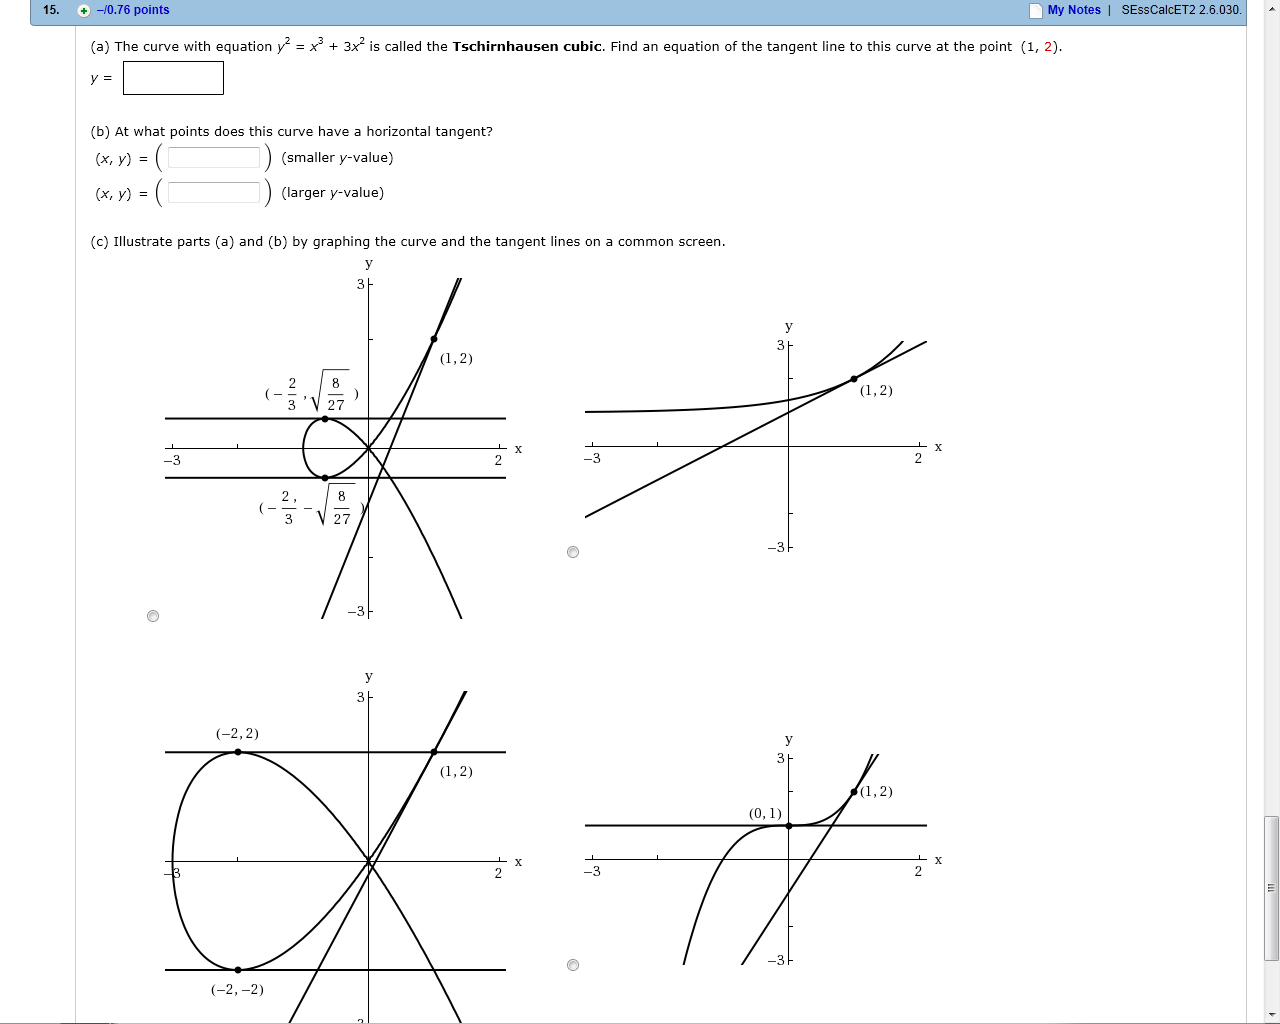 The Curve With Equation Y2 = X3 + 3x2 Is Called